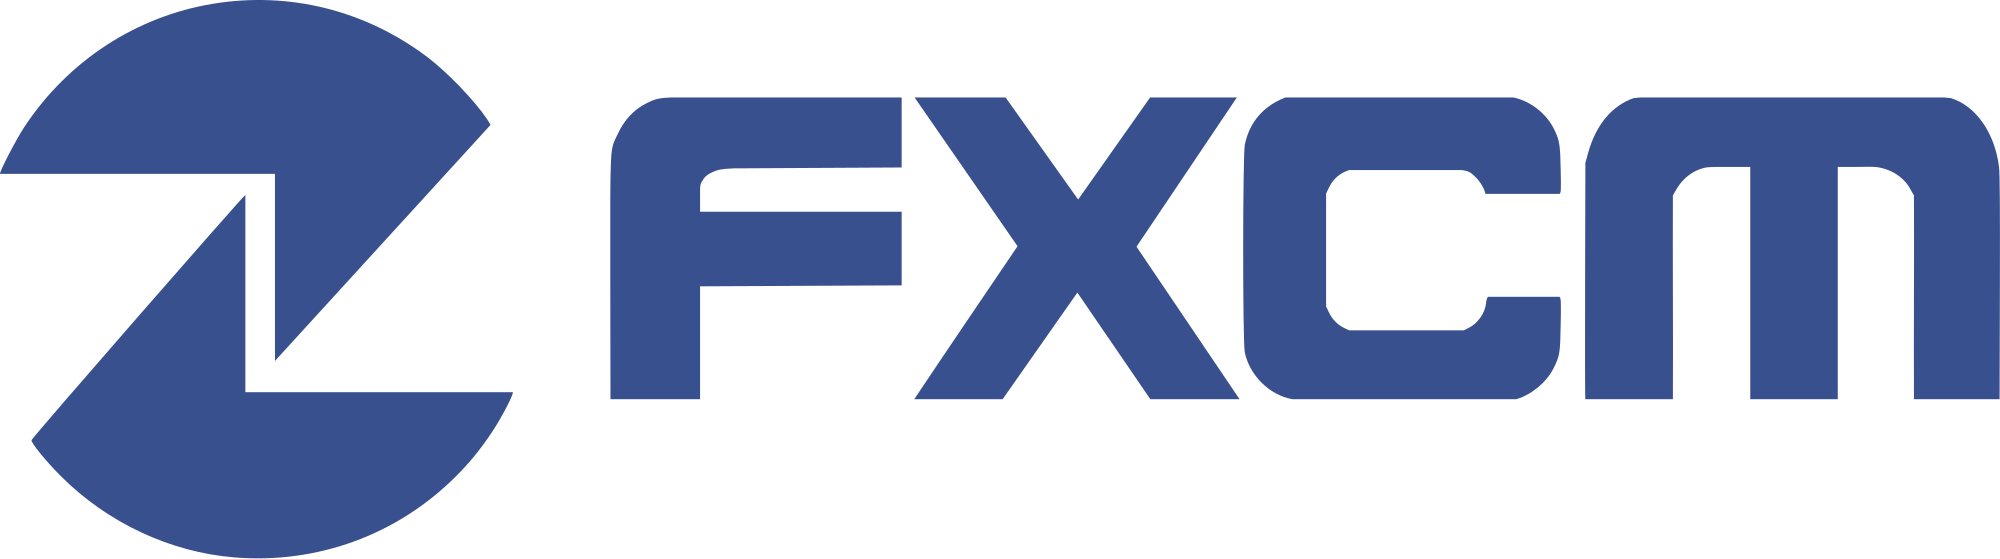 TRADE WITH FXCM    CLICK TO OPEN ACCOUNT